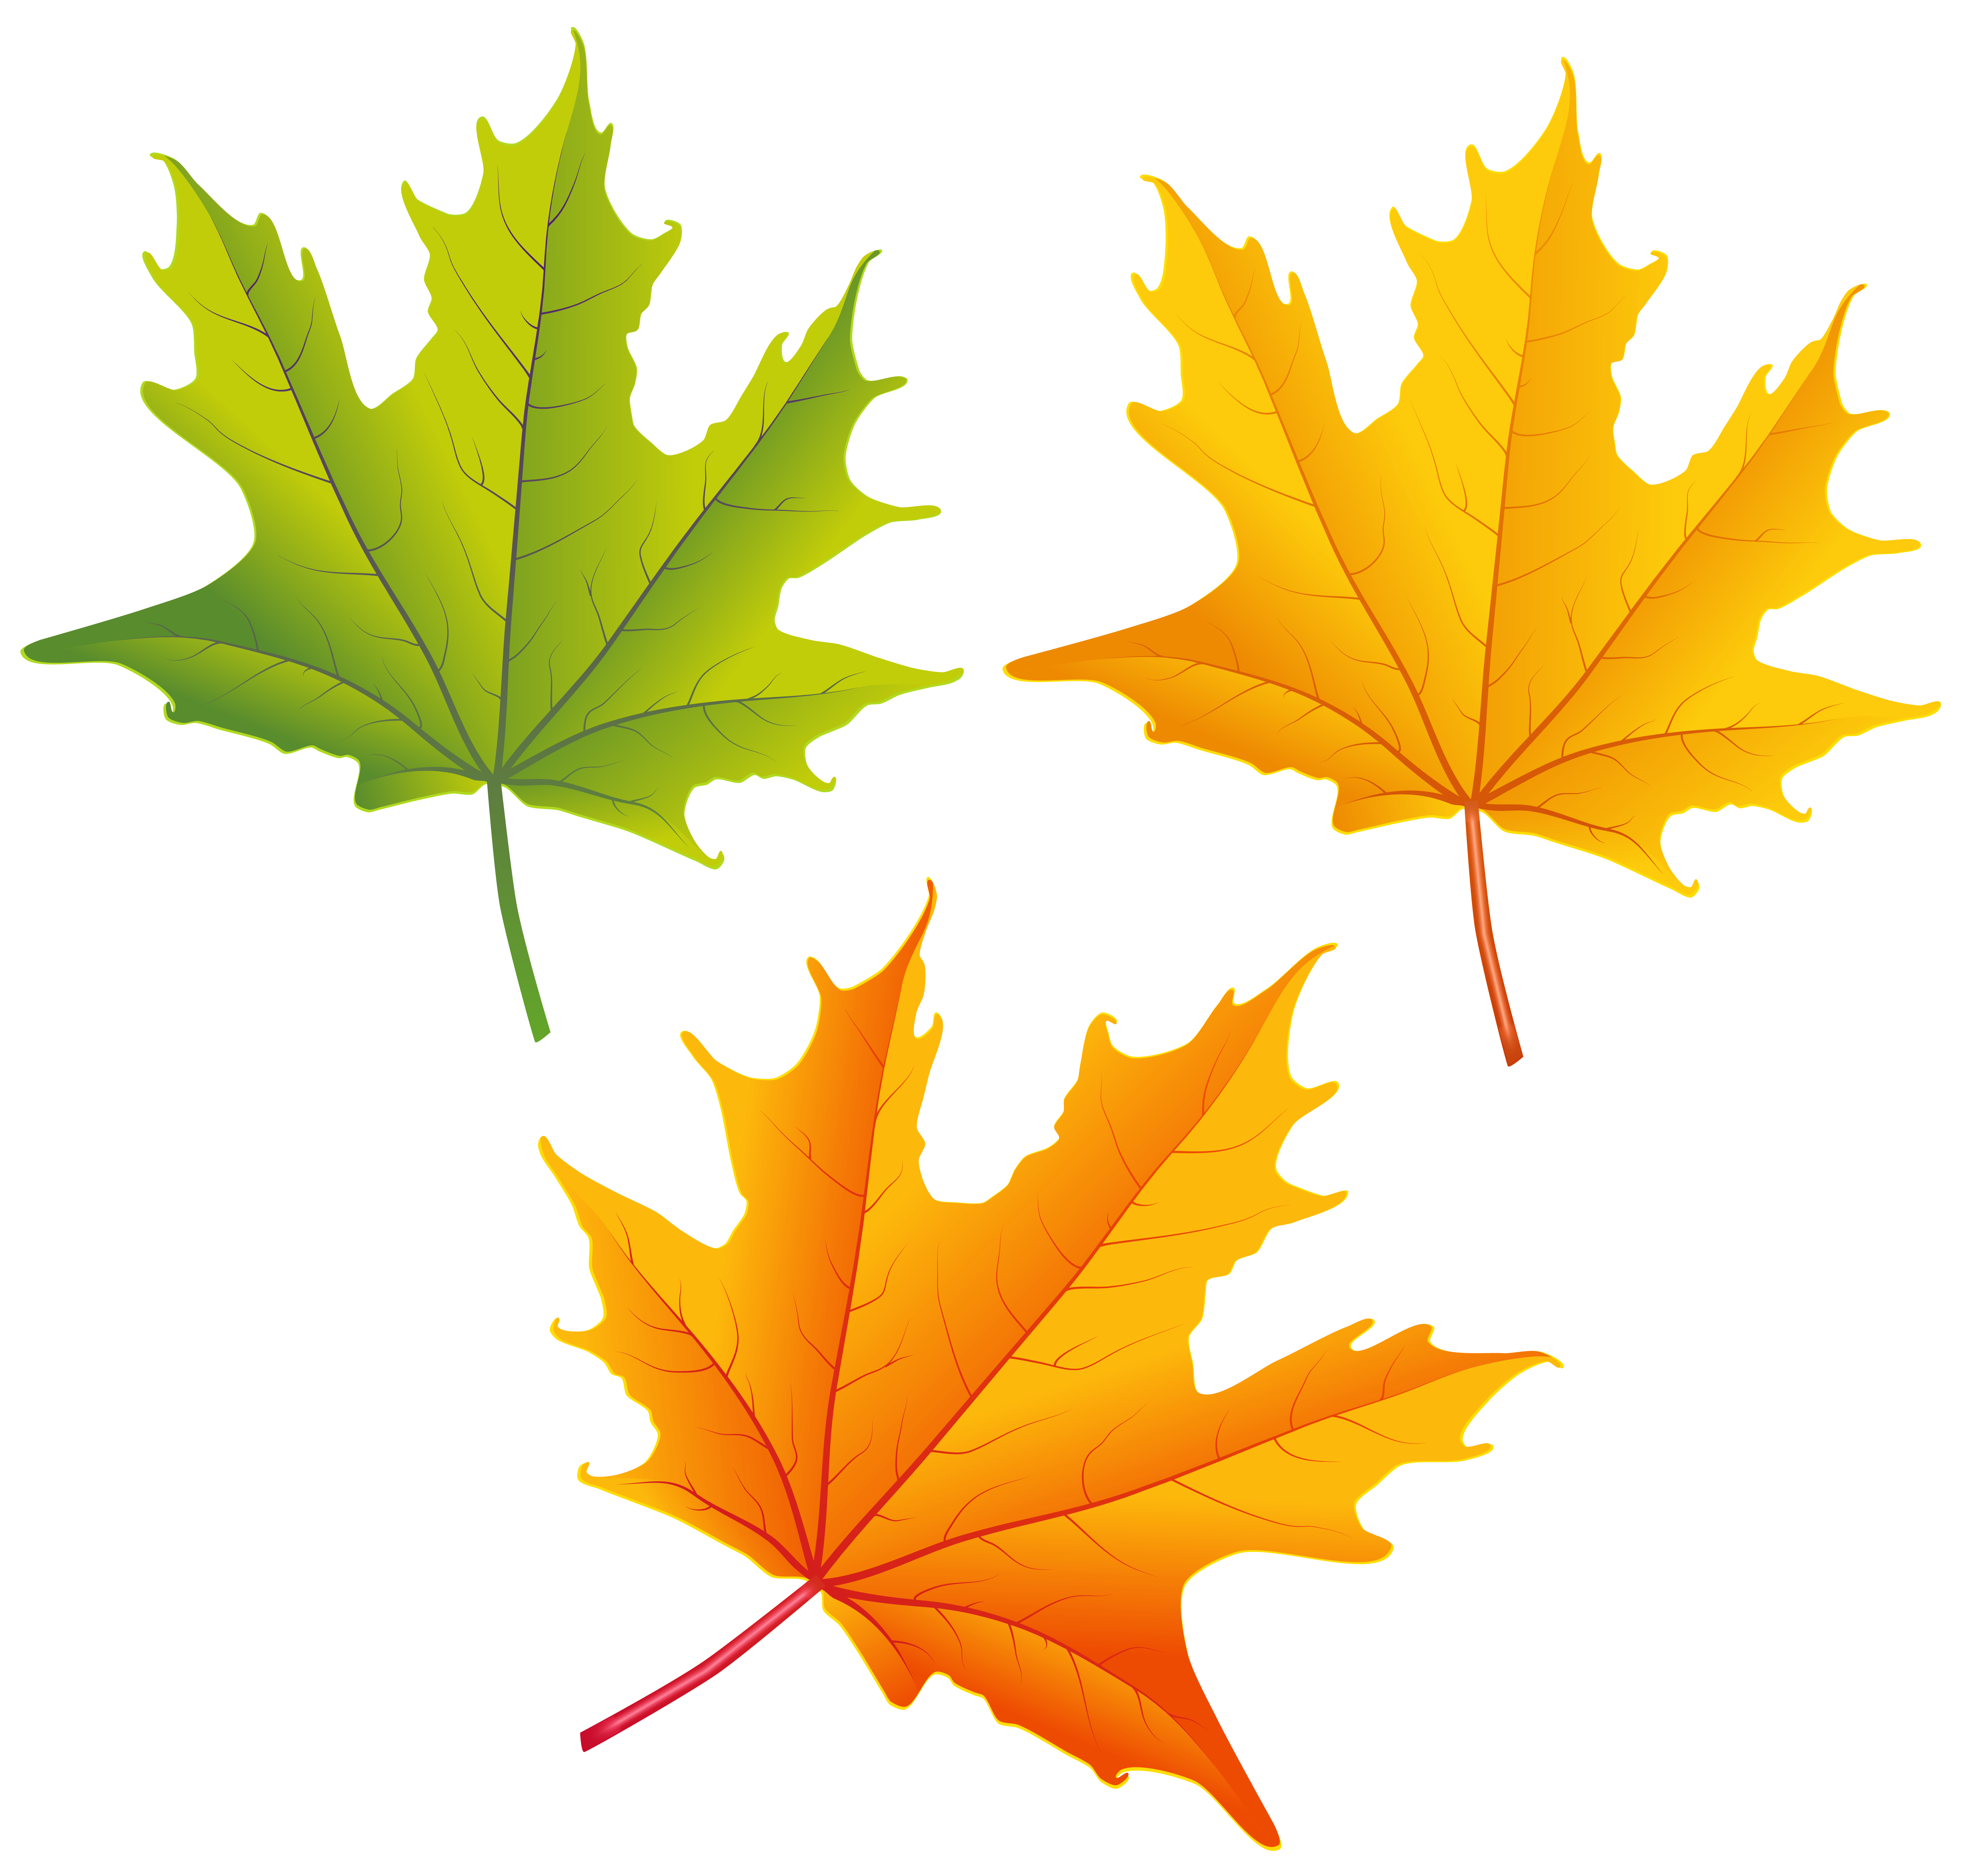 Fall leaves border labels png. Set of autumn clipart